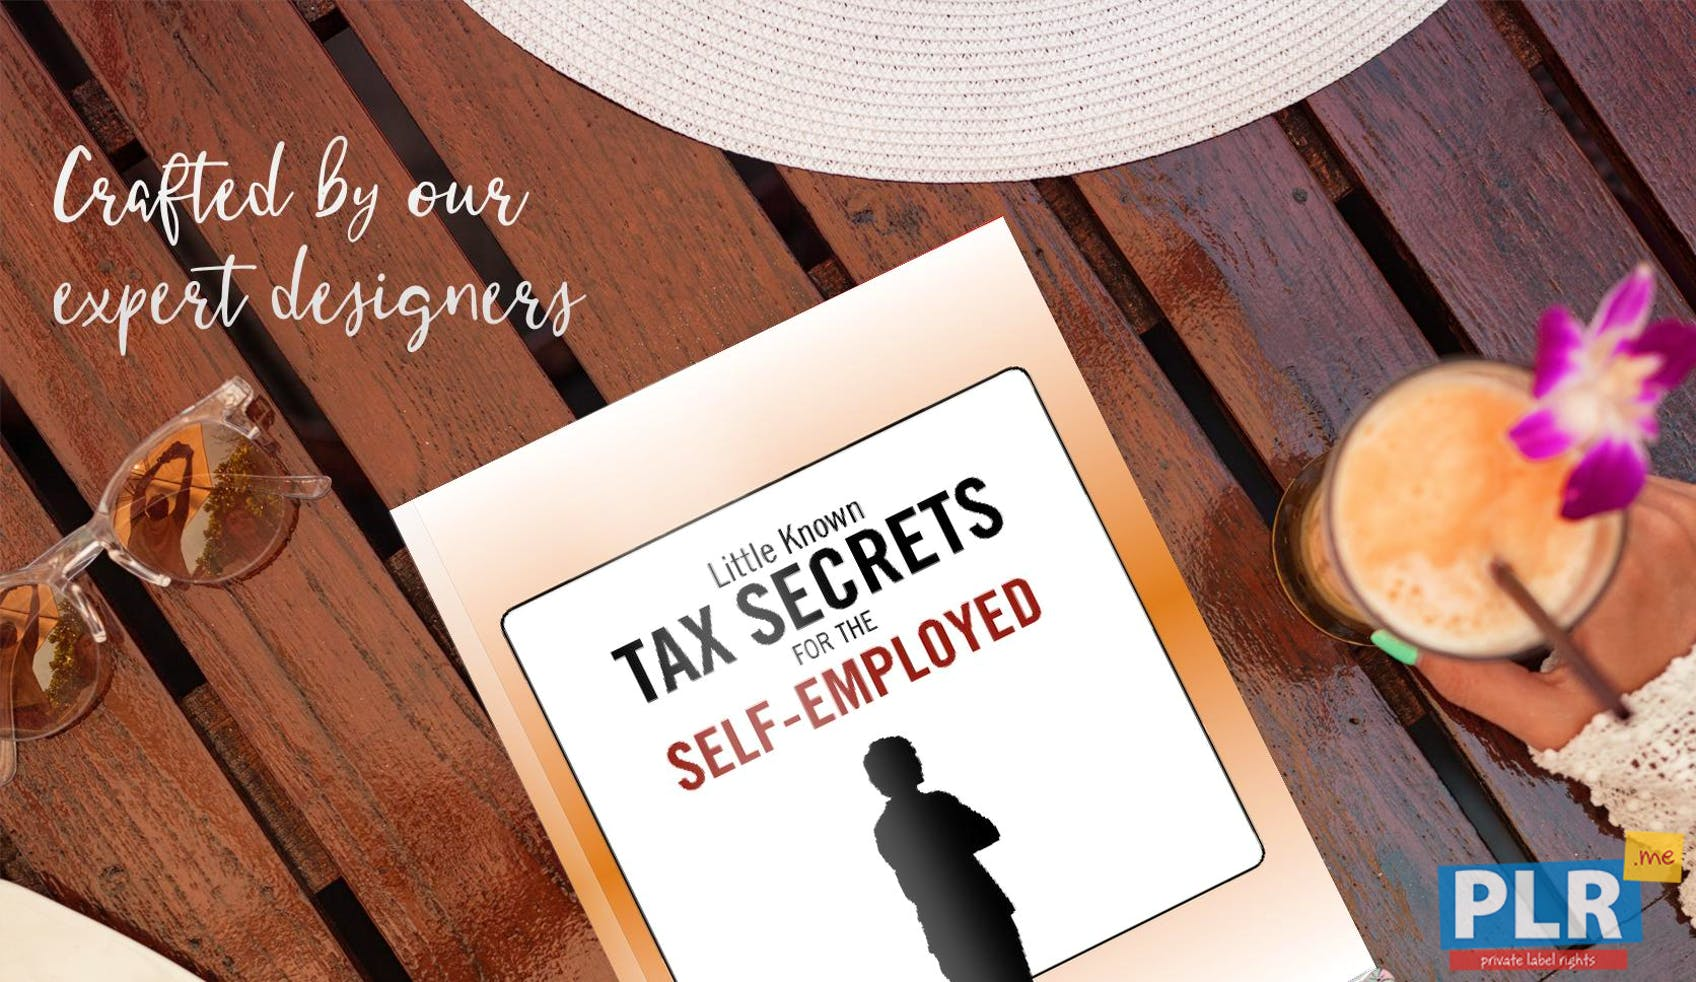 Little Known Tax Secrets For The Self Employed